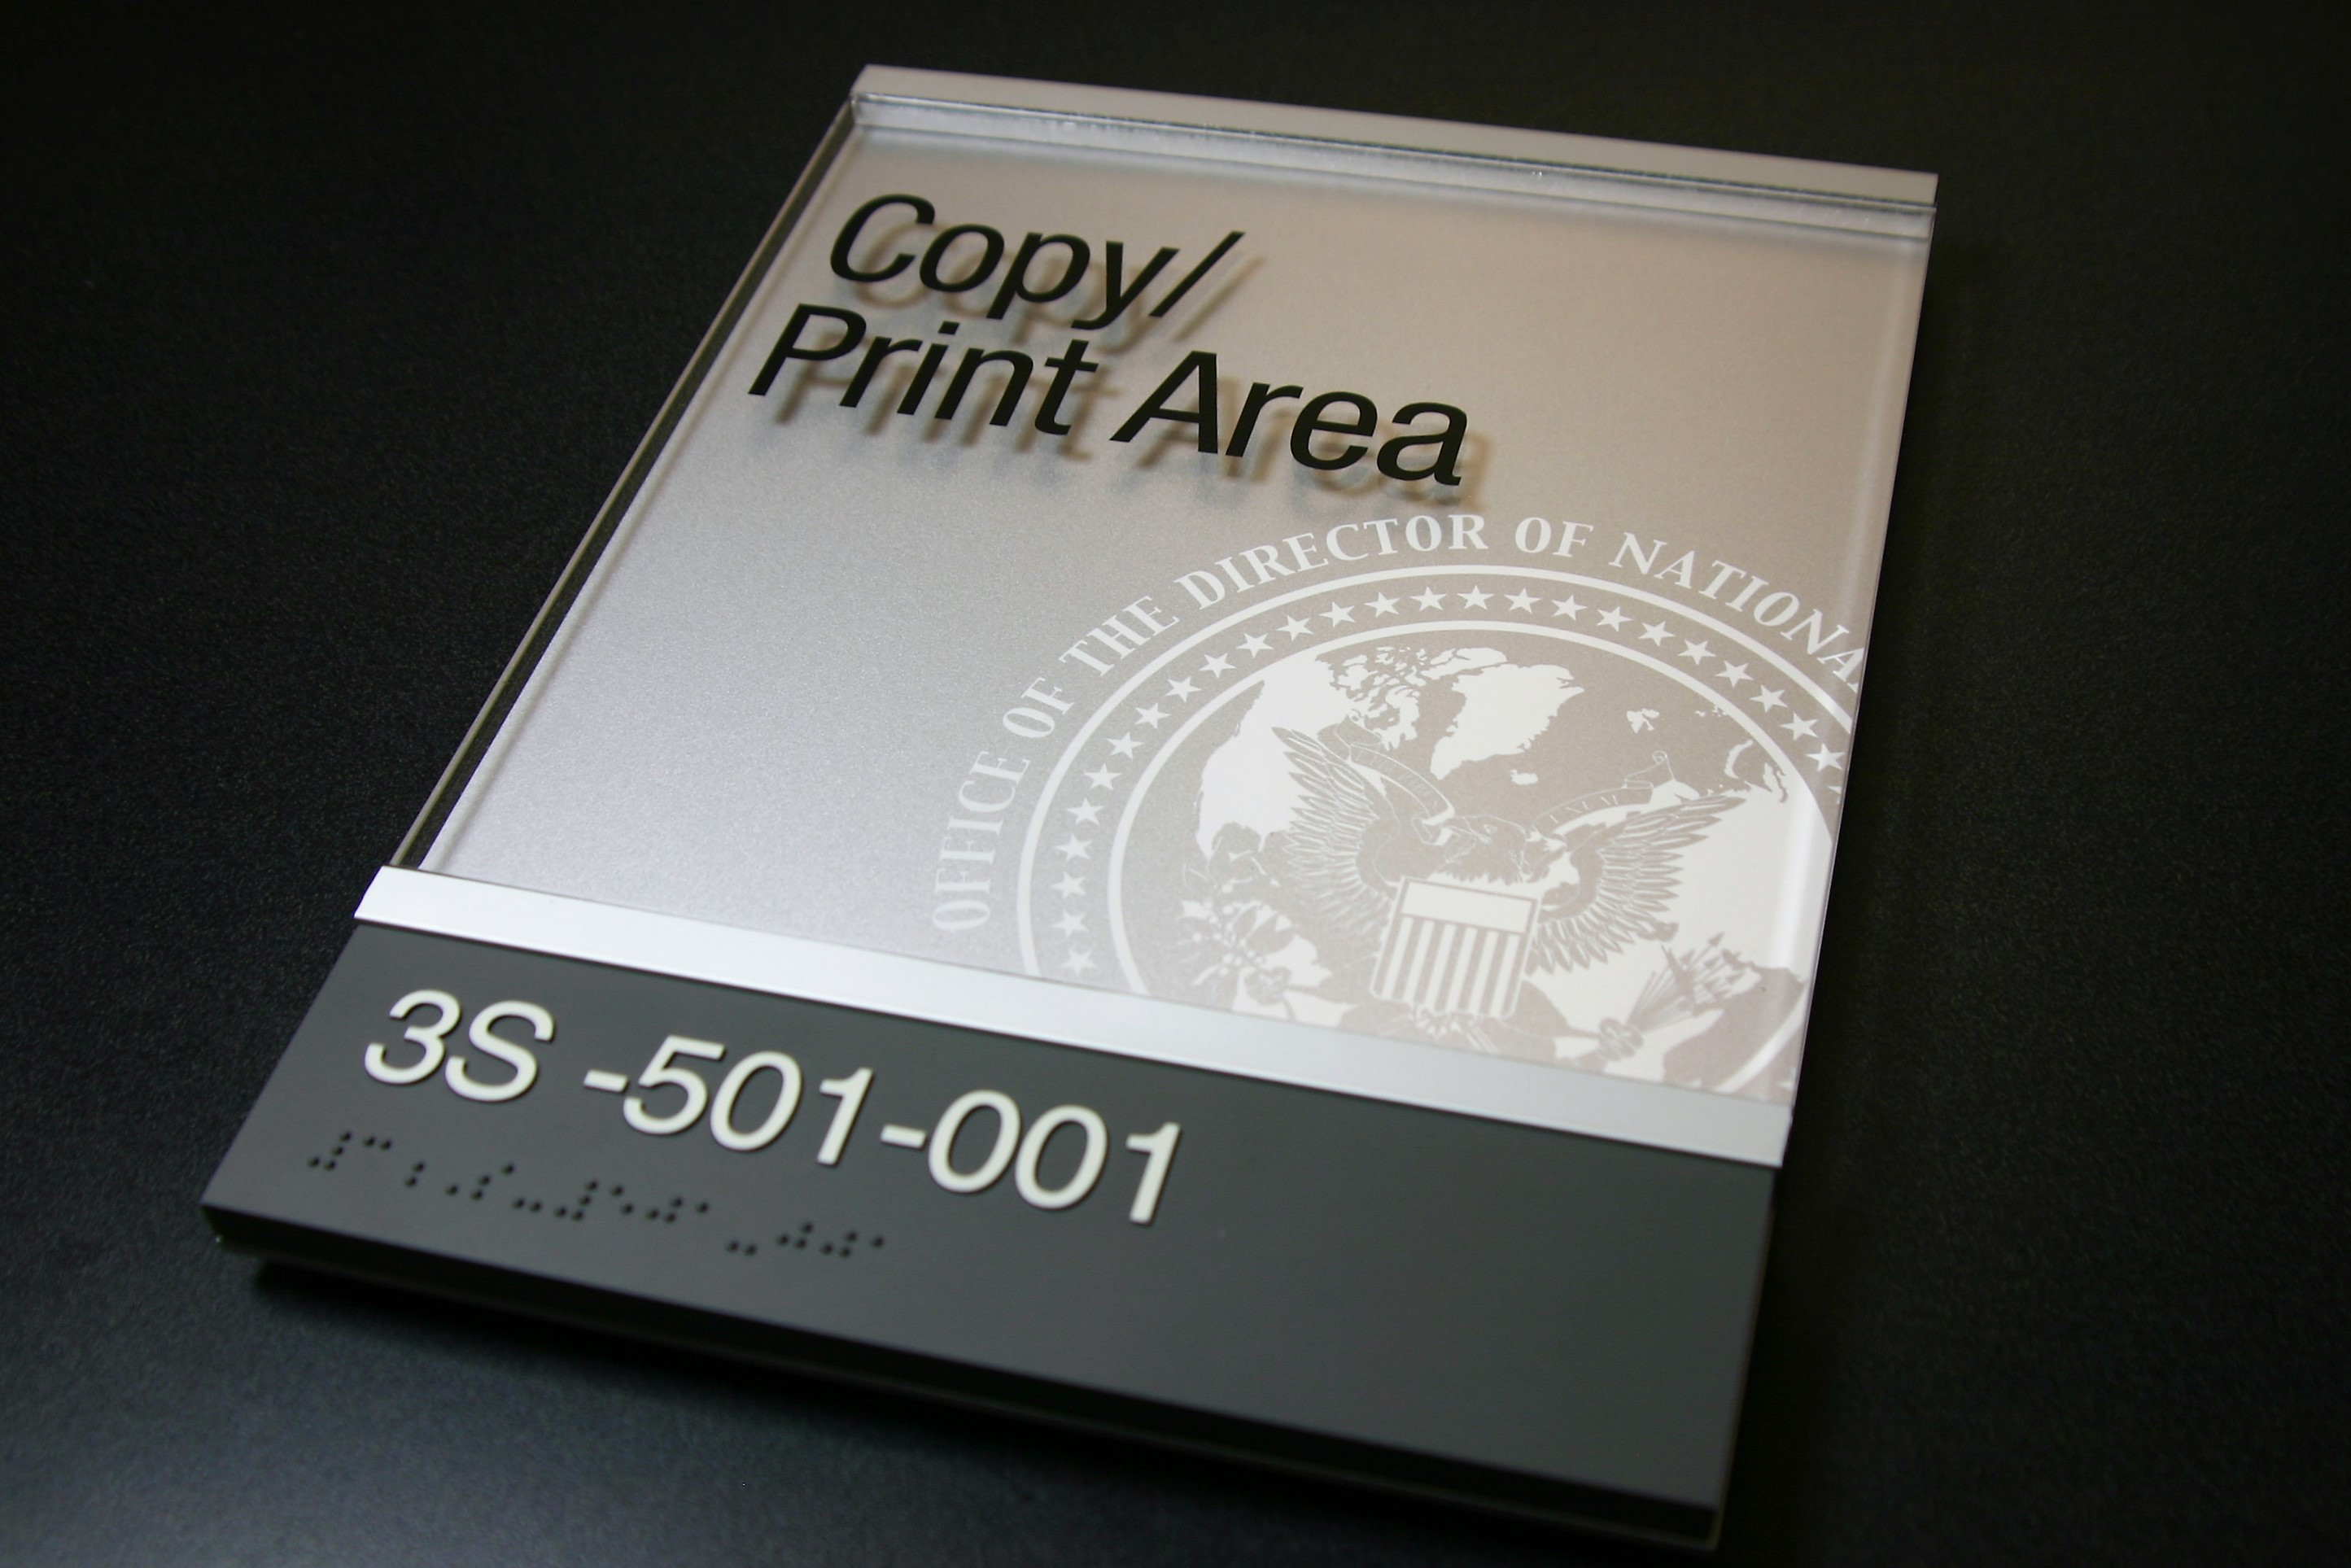 """.125"""" photopolymer lower section with integral text and braille. Upper section .125"""" clear acrylic with digitally printed text. Decorative aluminum bars that create sliding insert section at top. .125"""" surface painted acrylic backplate with digitally printed logo."""